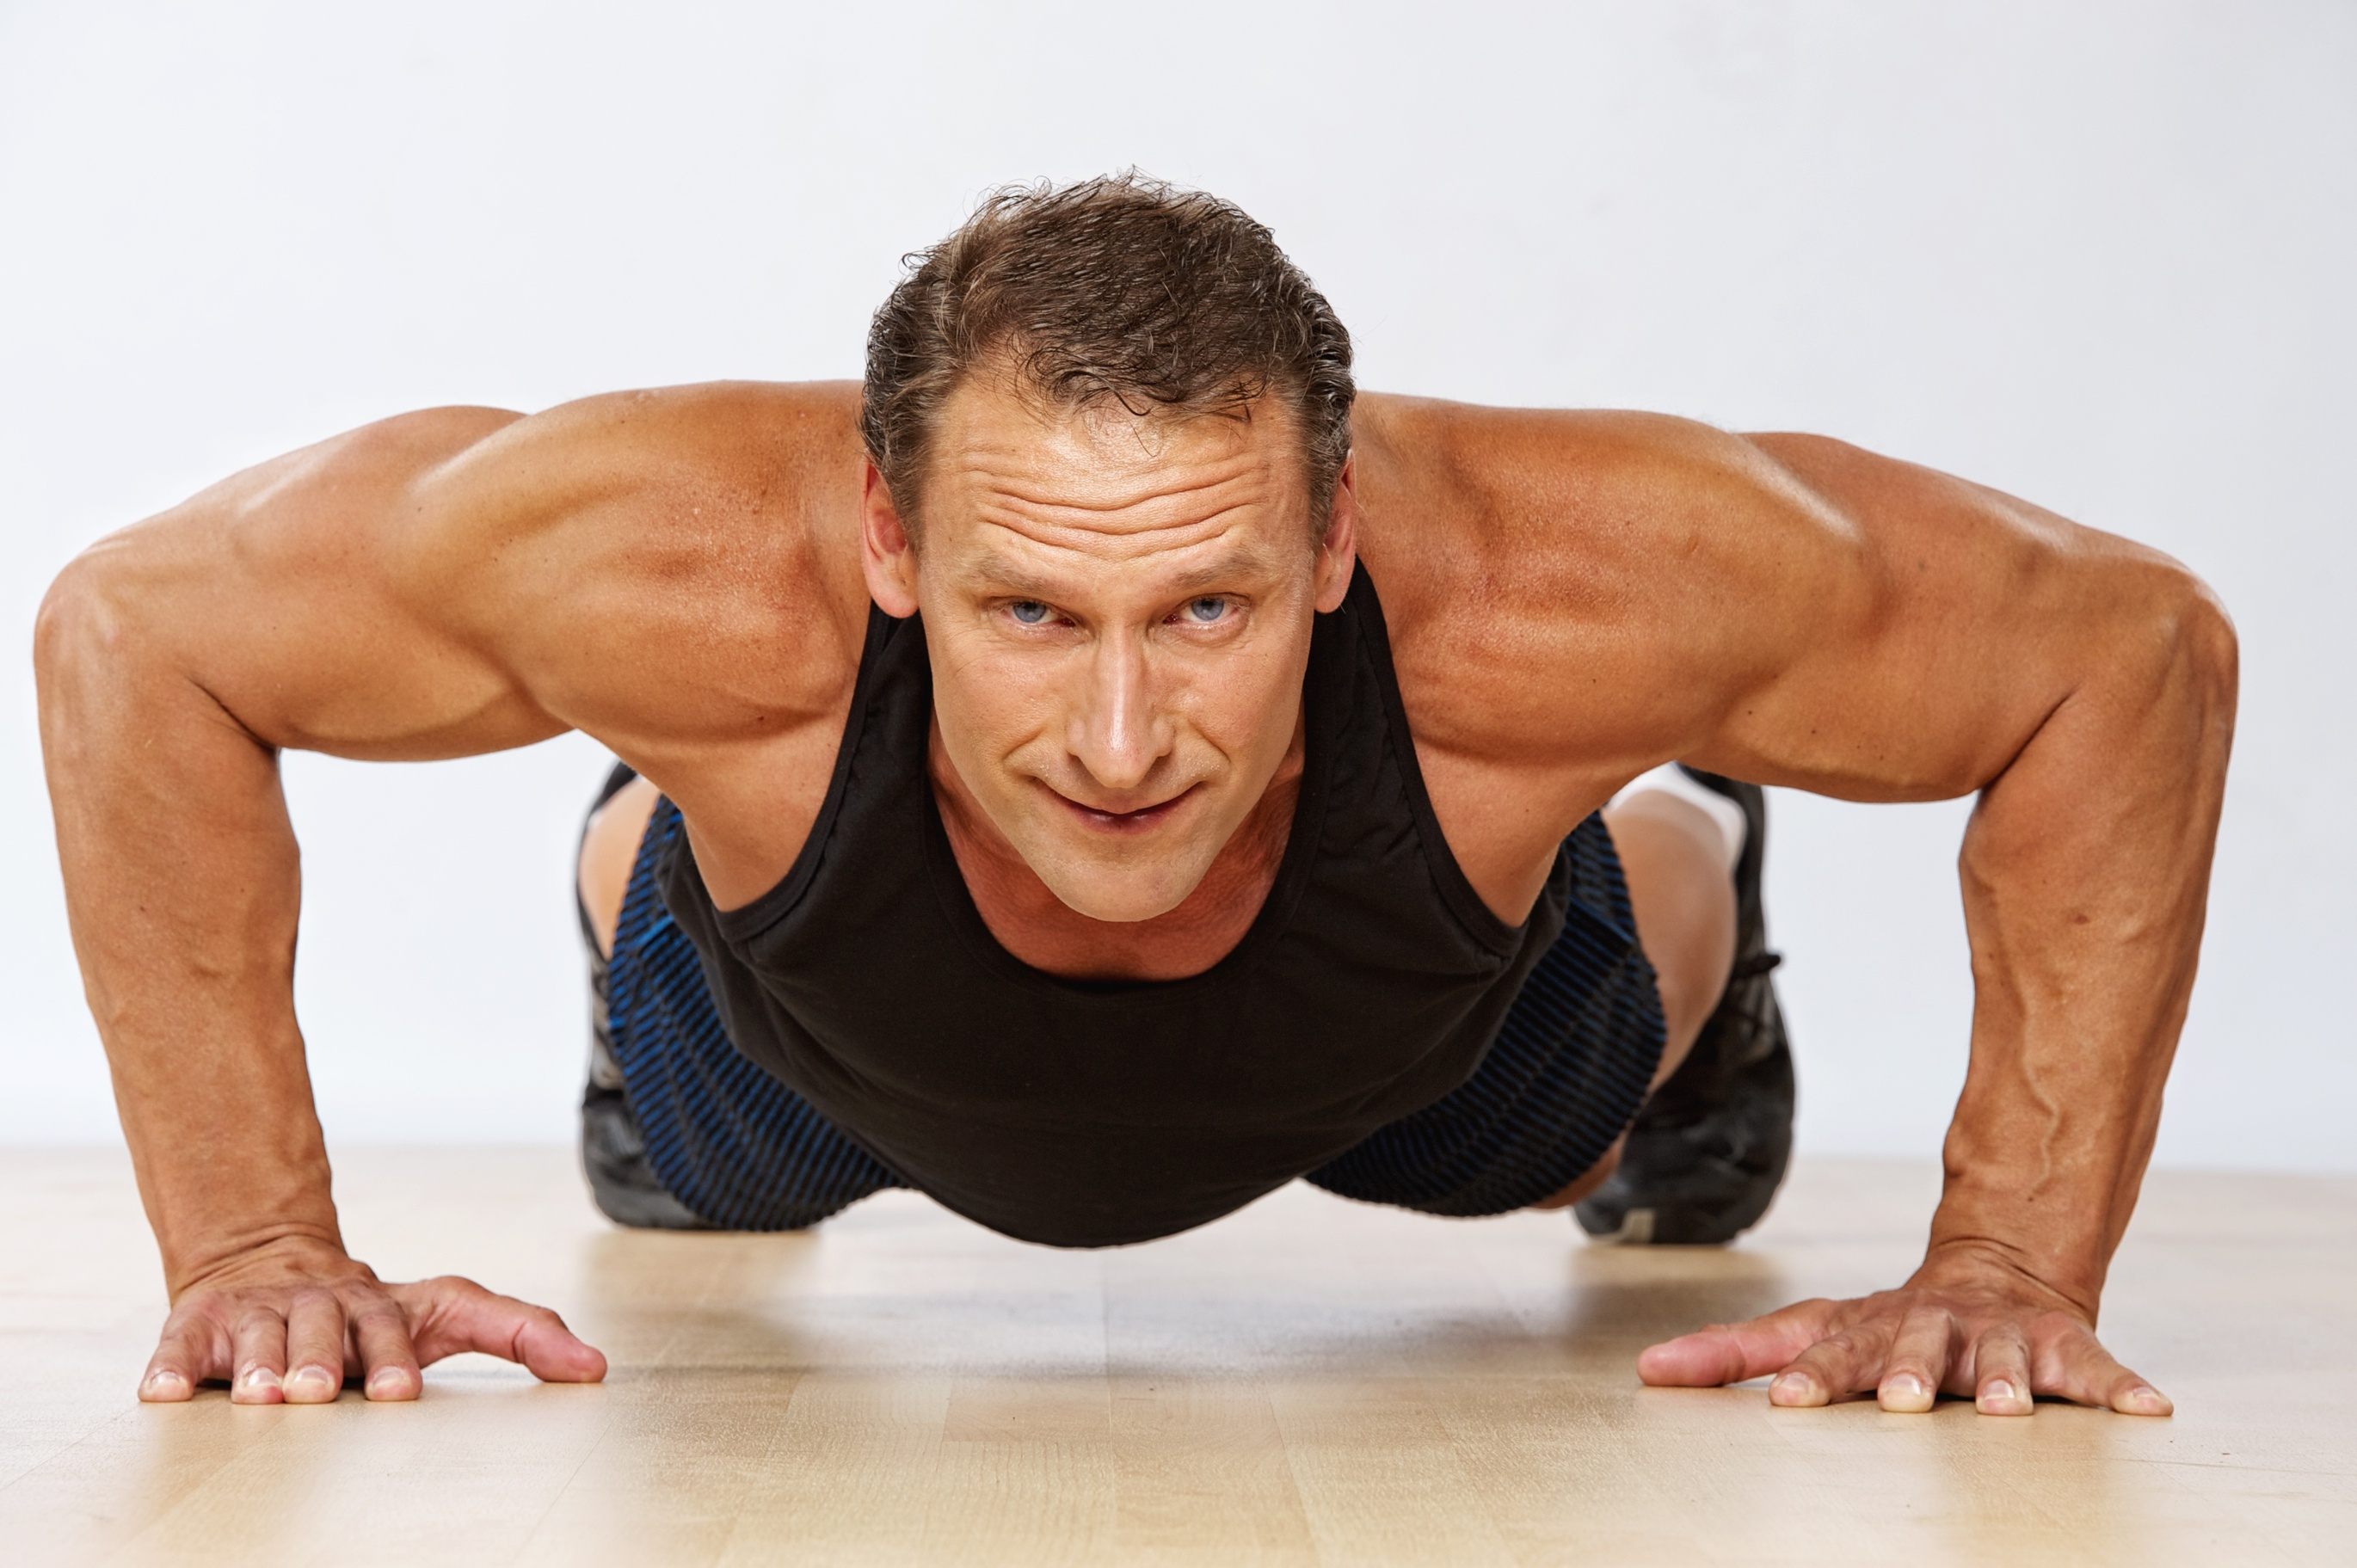 10 Workout Tips For The Middle-Aged Man